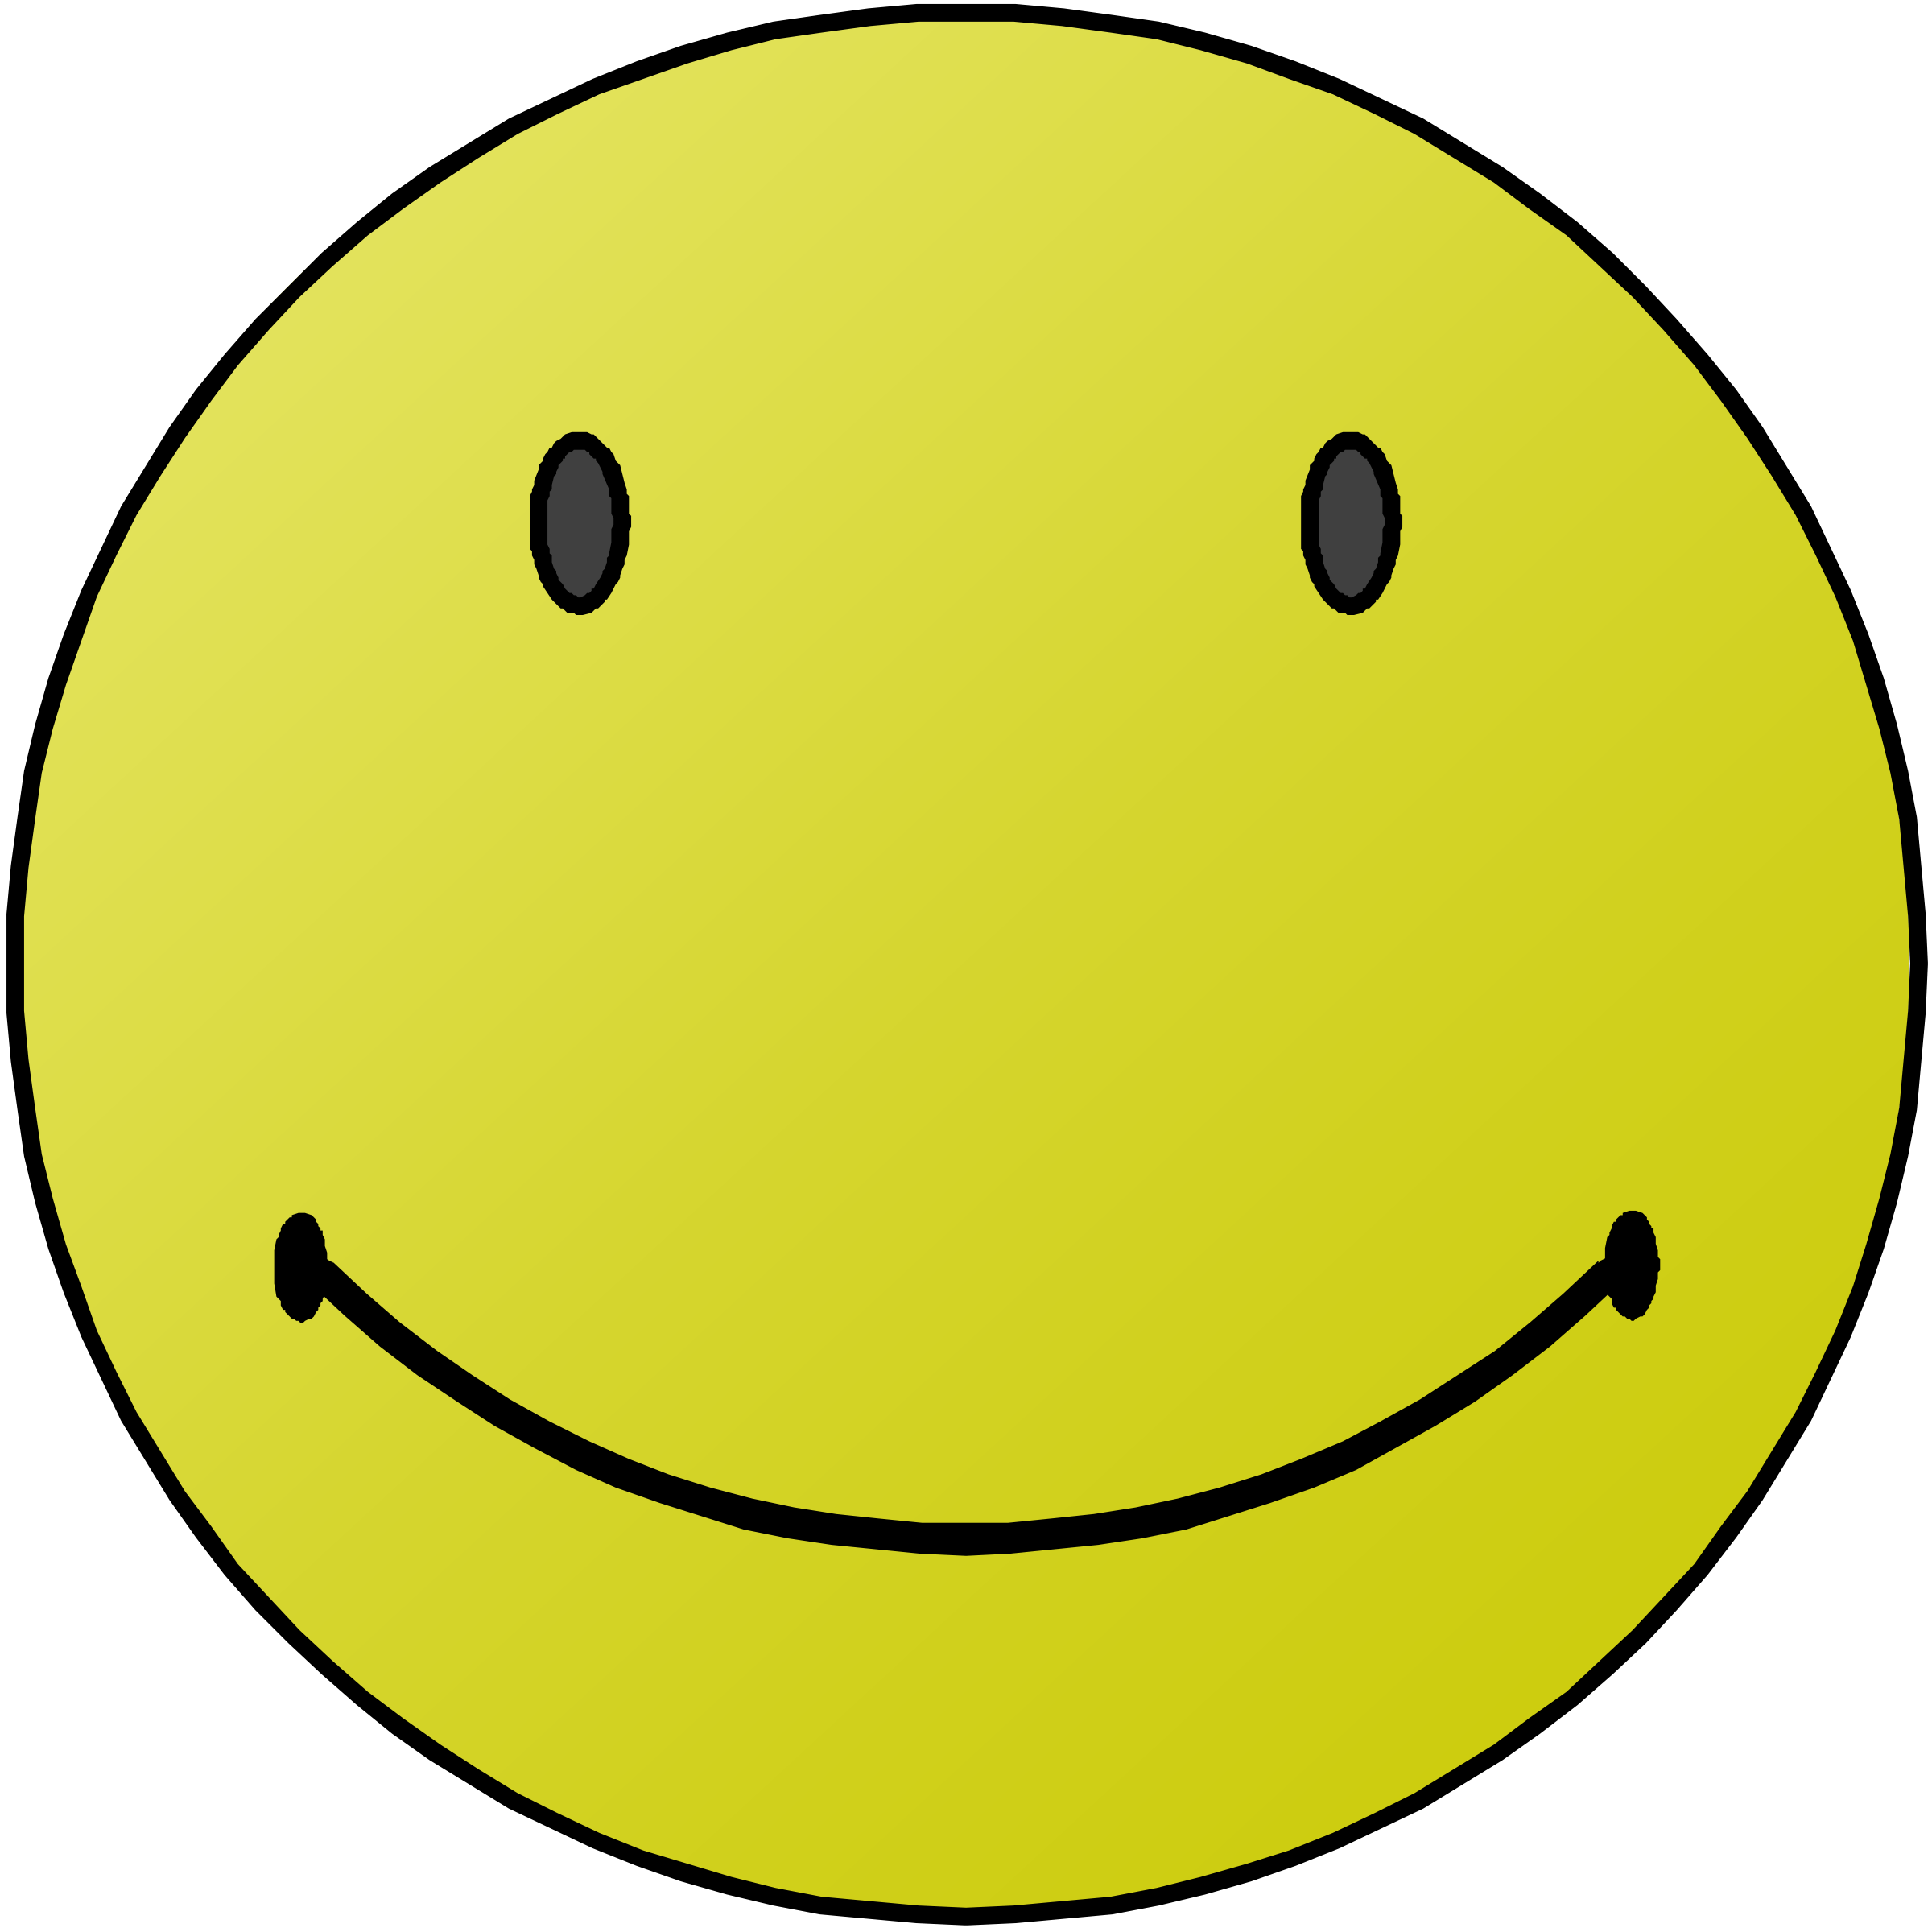 Smiley Face Happy Face Clipart Free Clip-Smiley face happy face clipart free clipart images-18